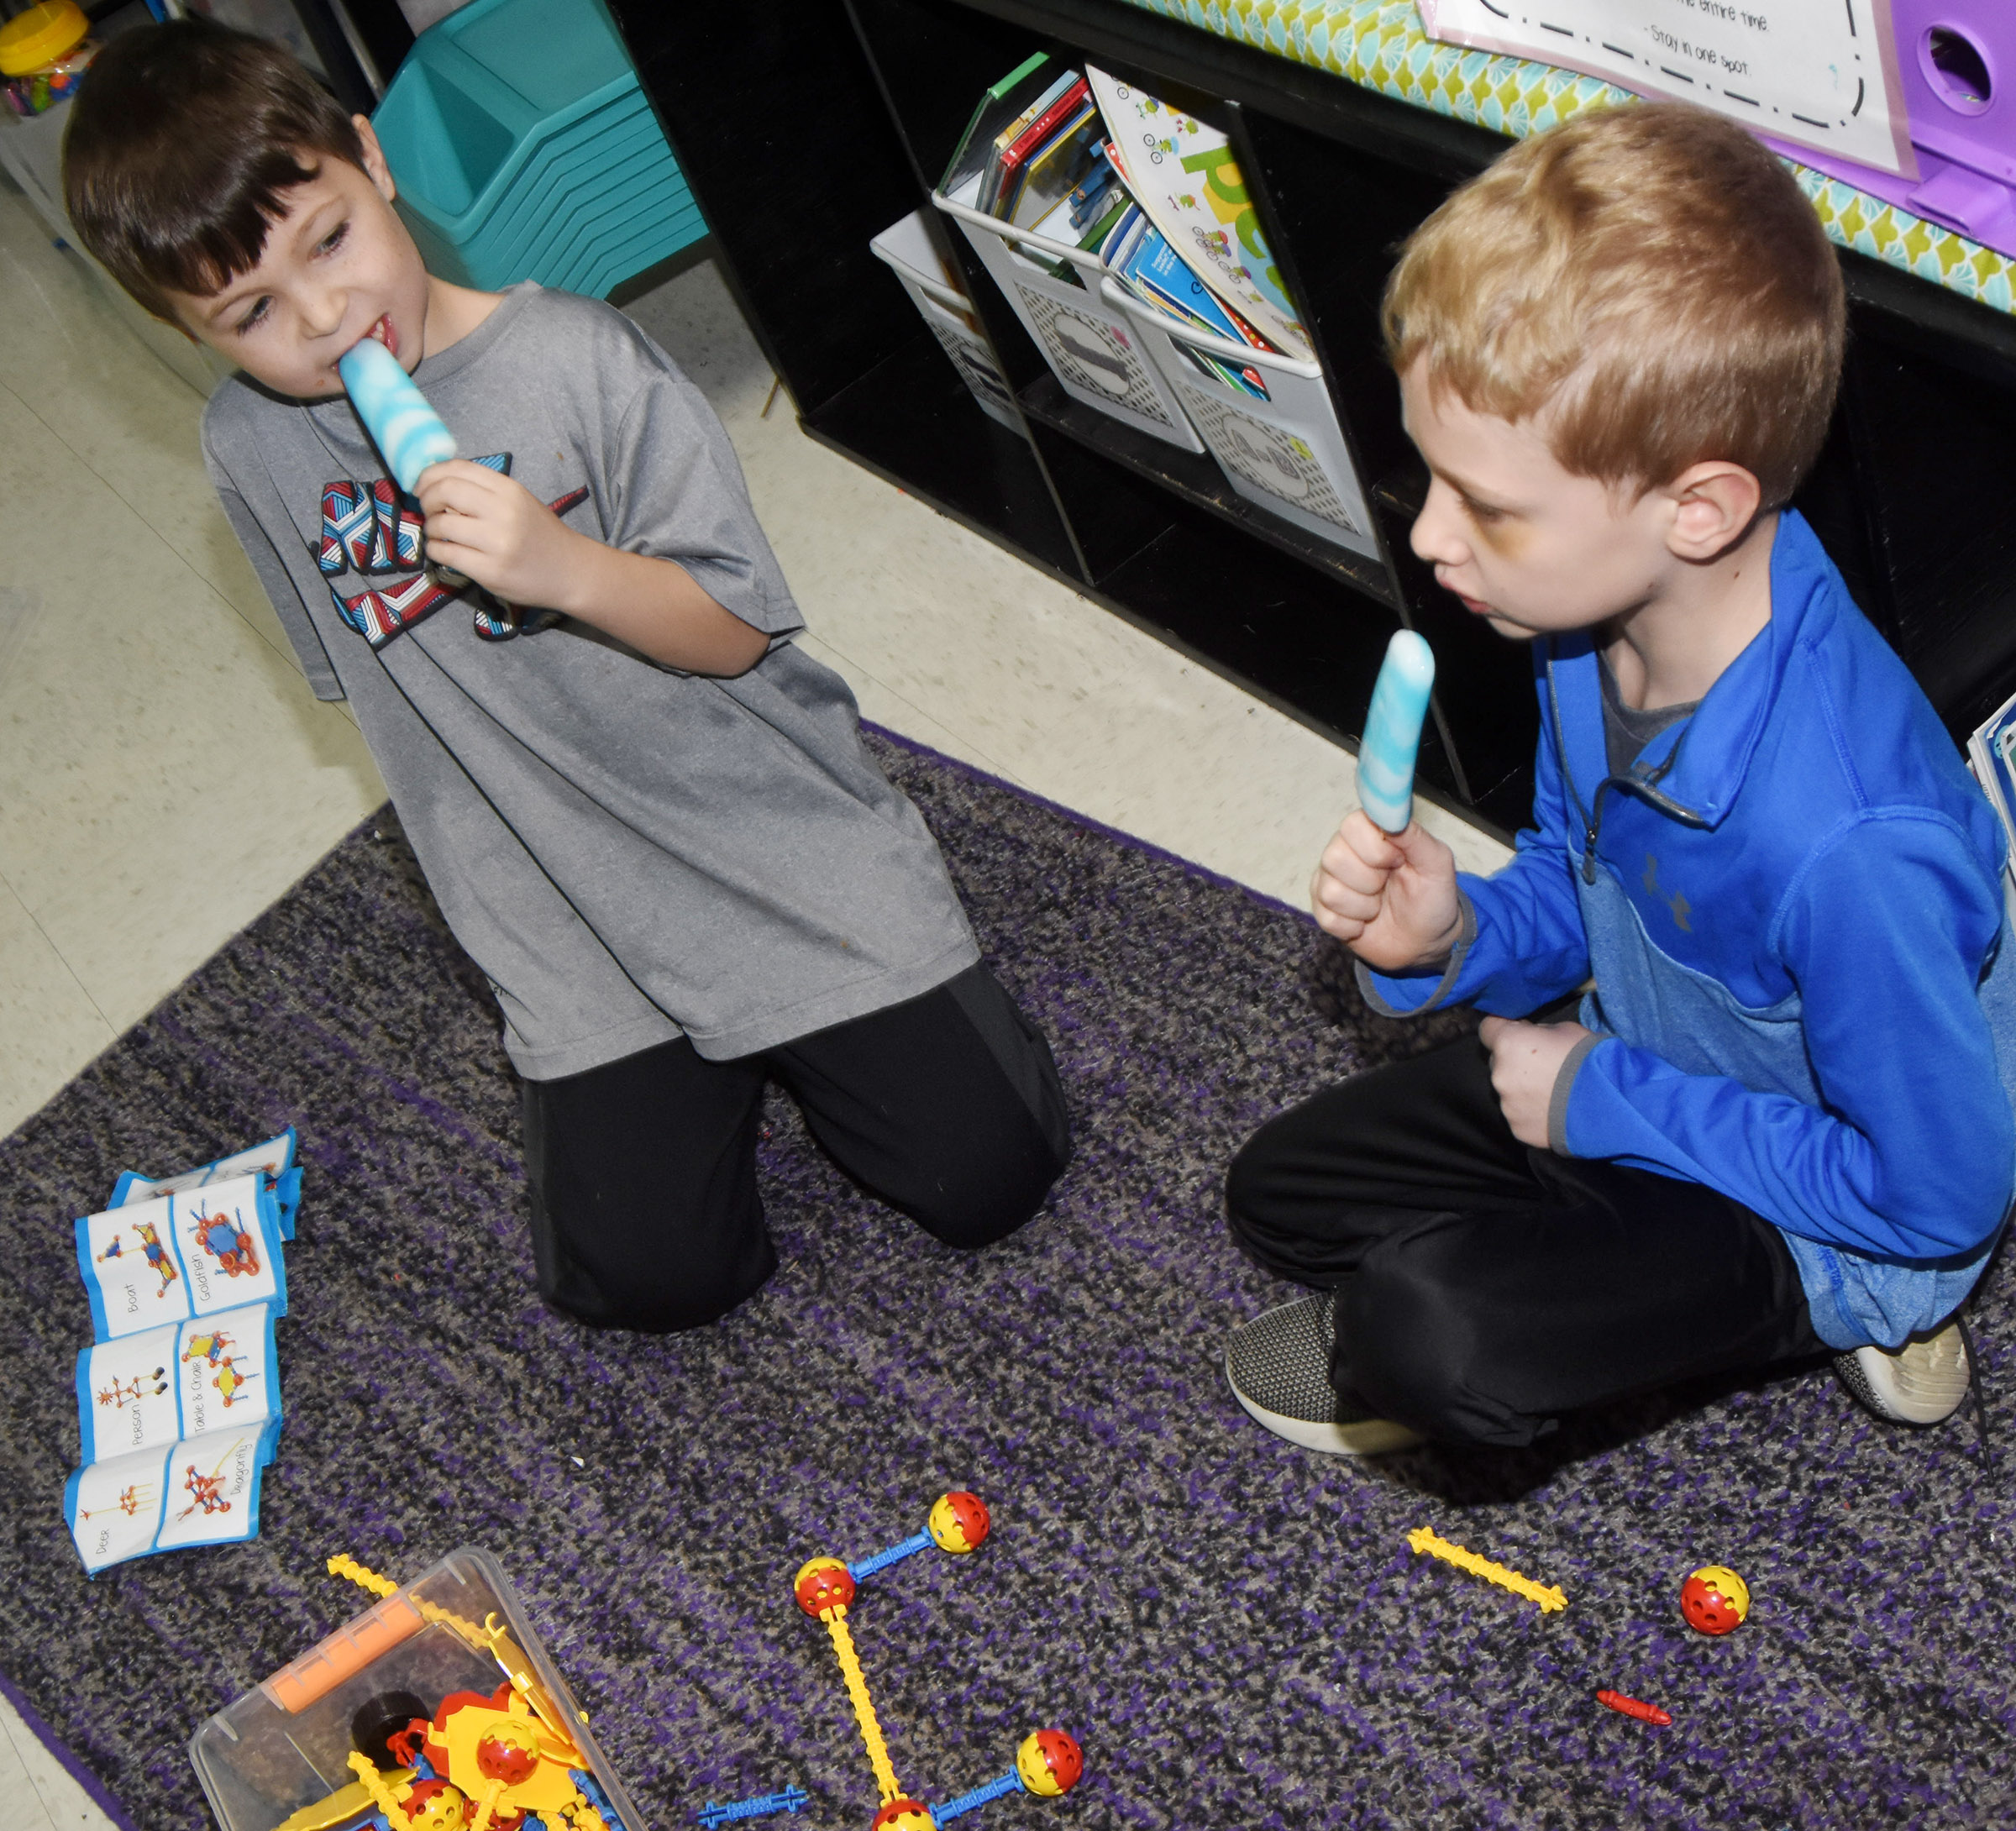 CES first-graders Bentley Wilhoite, at left, and Jackson Wright enjoy popsicles as they build together.